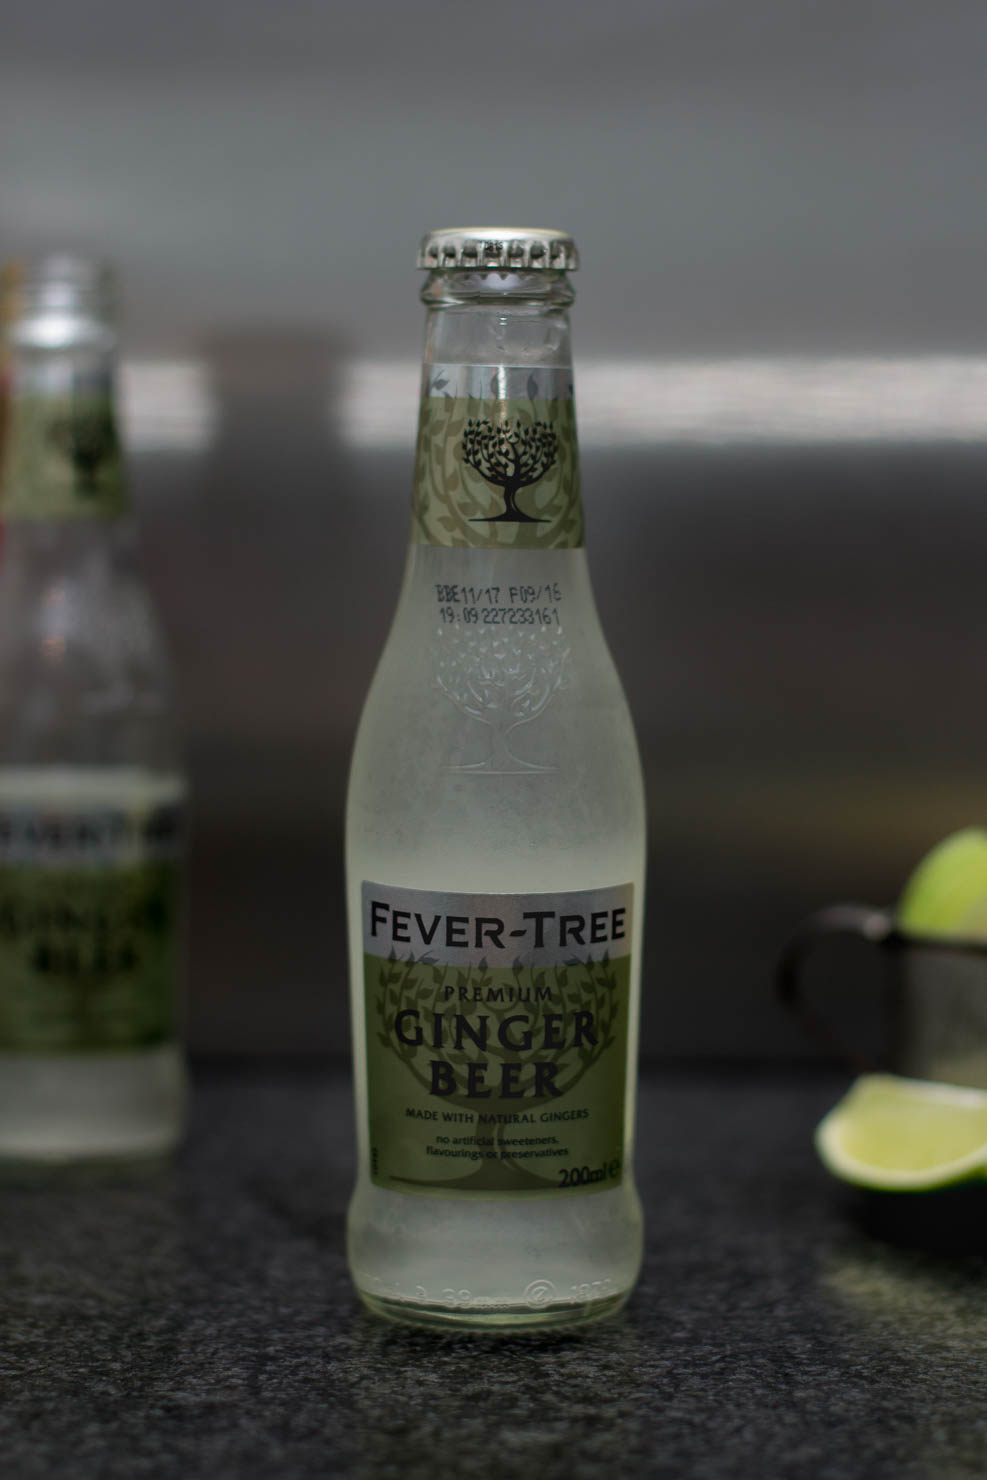 Fever-tree Ginger beer | Eple og ingefaer sour